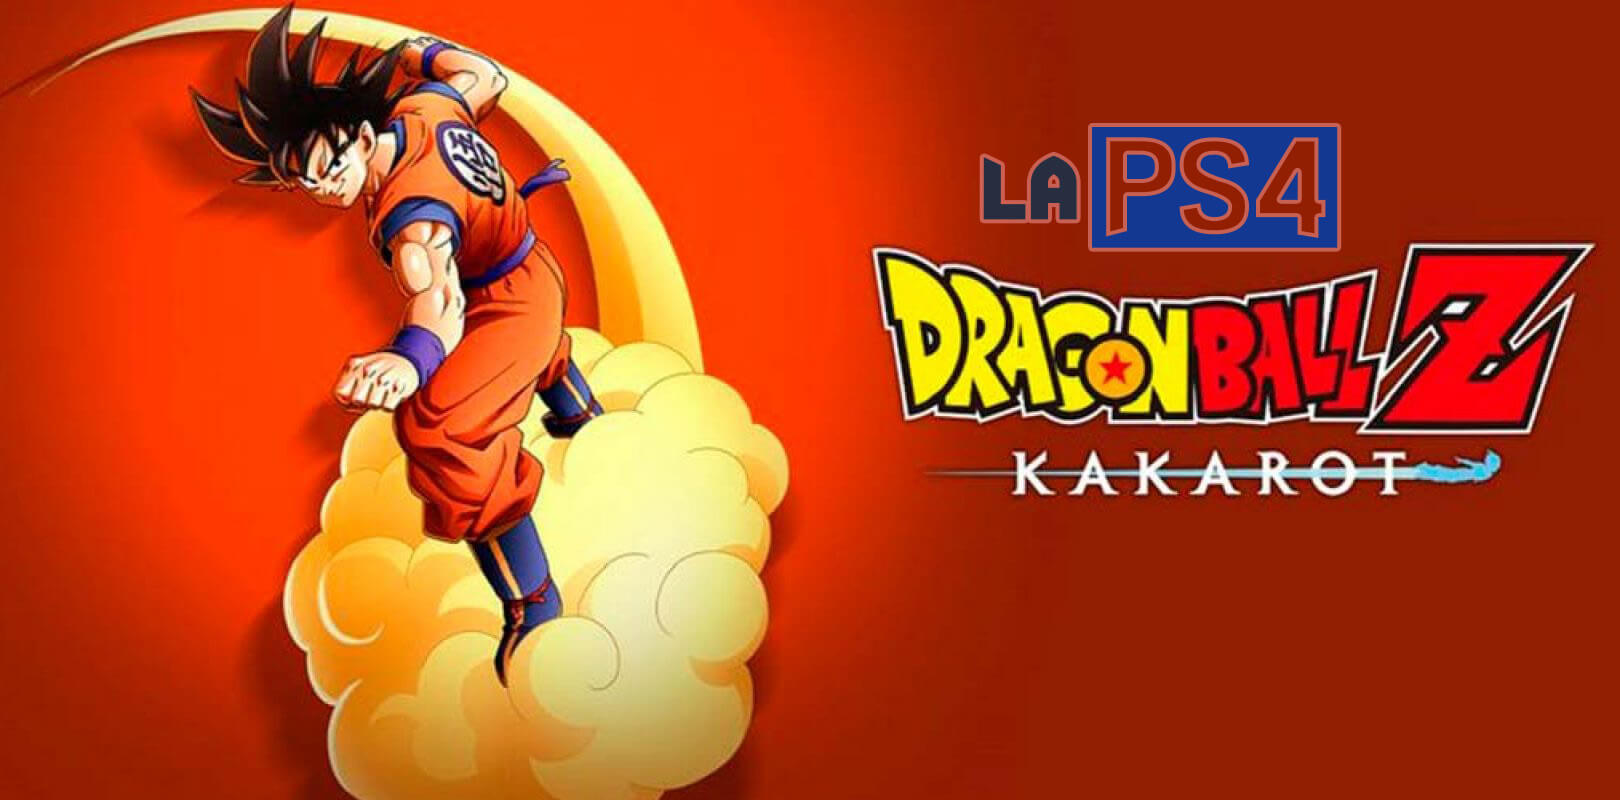 Analisis de Dragon Ball Z: Kakarot